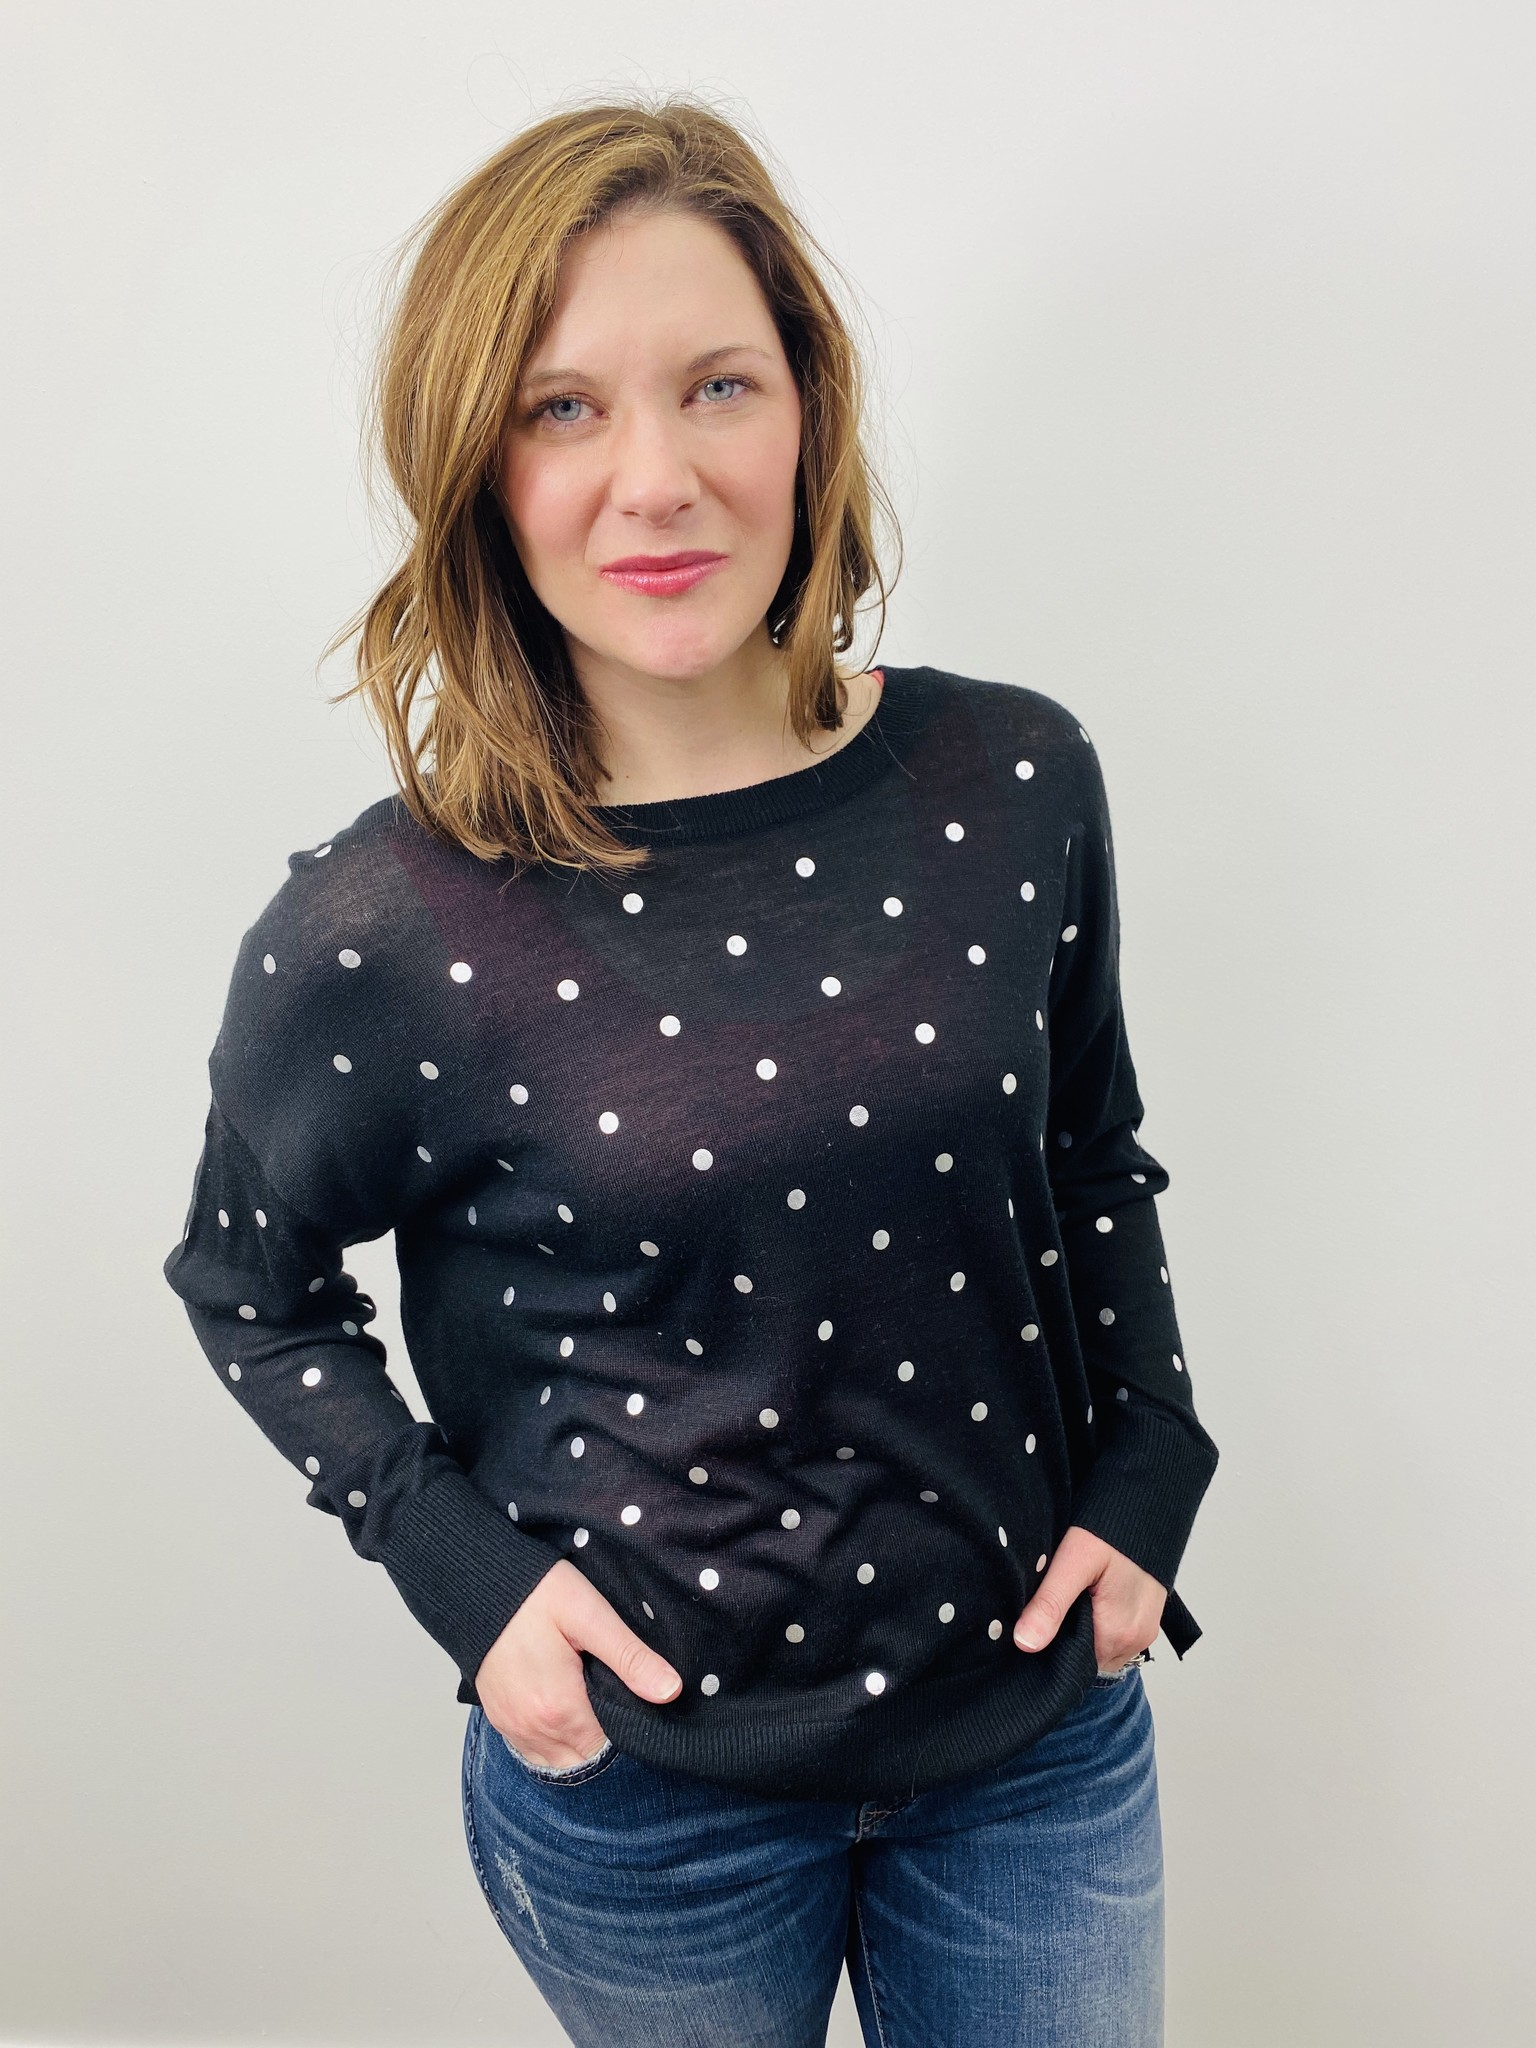 Dex Crew Neck Polka Dot Sweater in Black and Silver